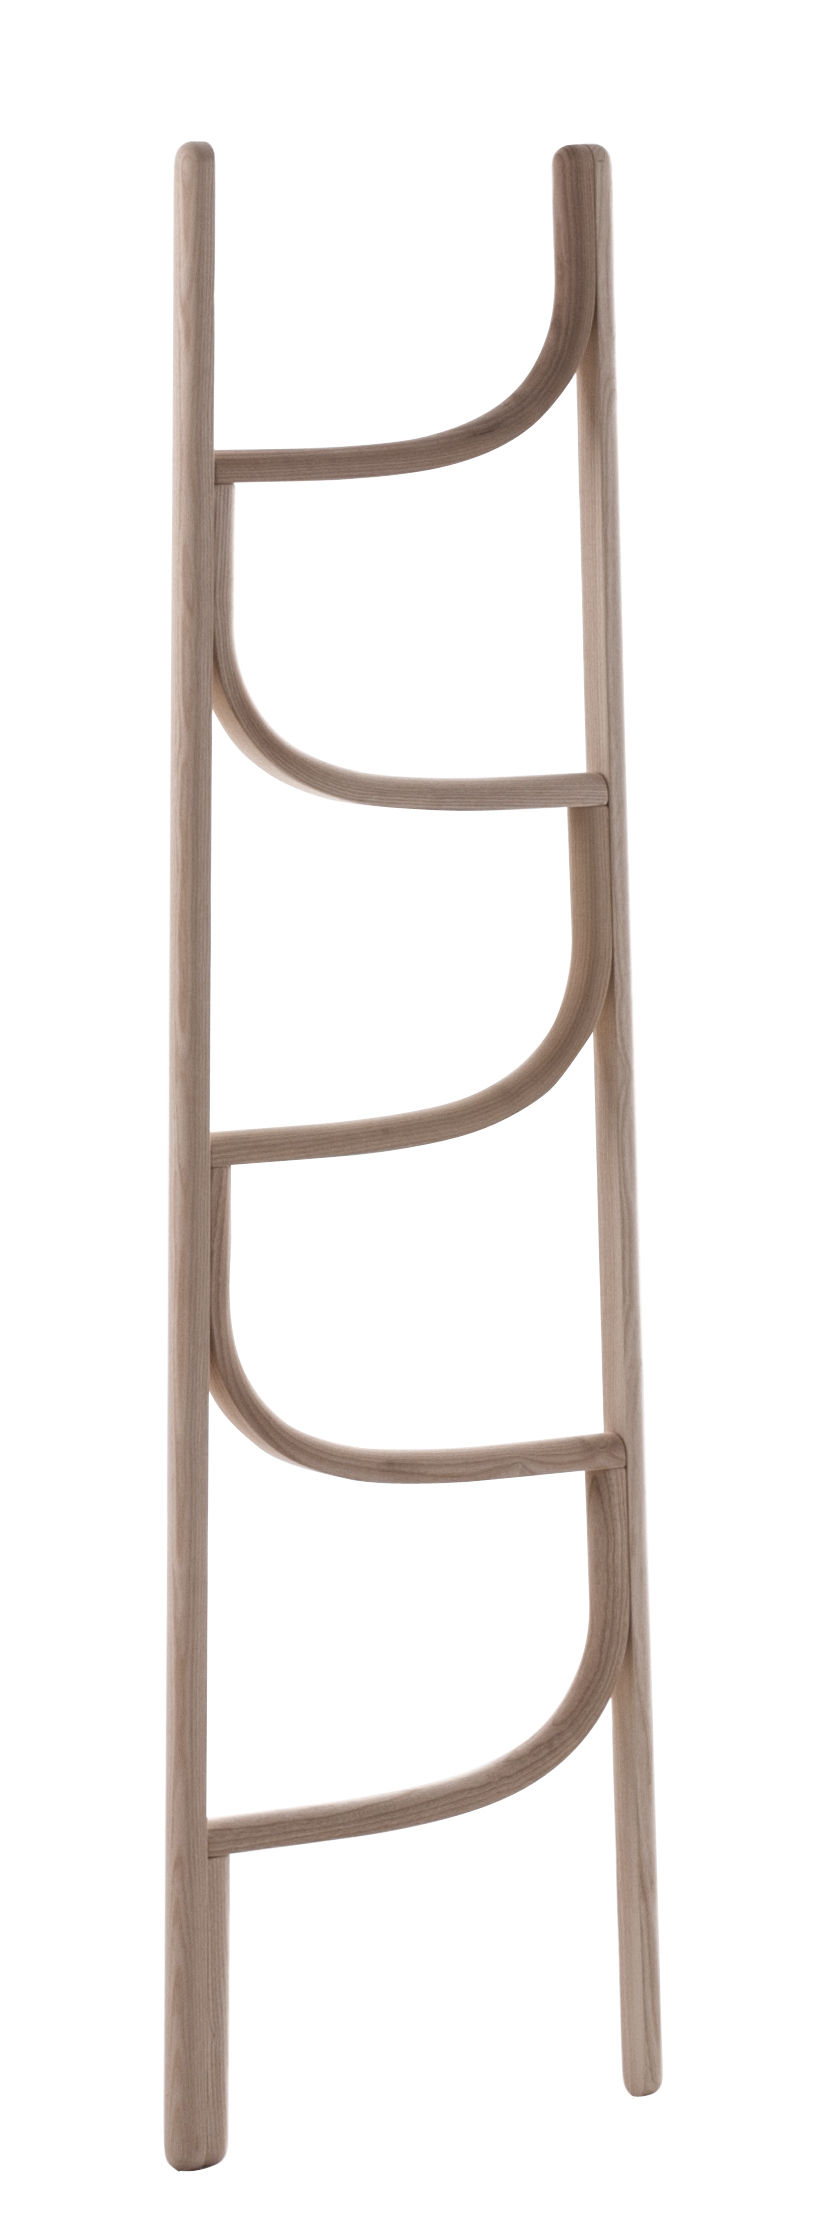 Furniture - Miscellaneous furniture - Ladder Towel rail - / Towel rail - H 160 cm by Wiener GTV Design - Natural wood - Curved solid ash